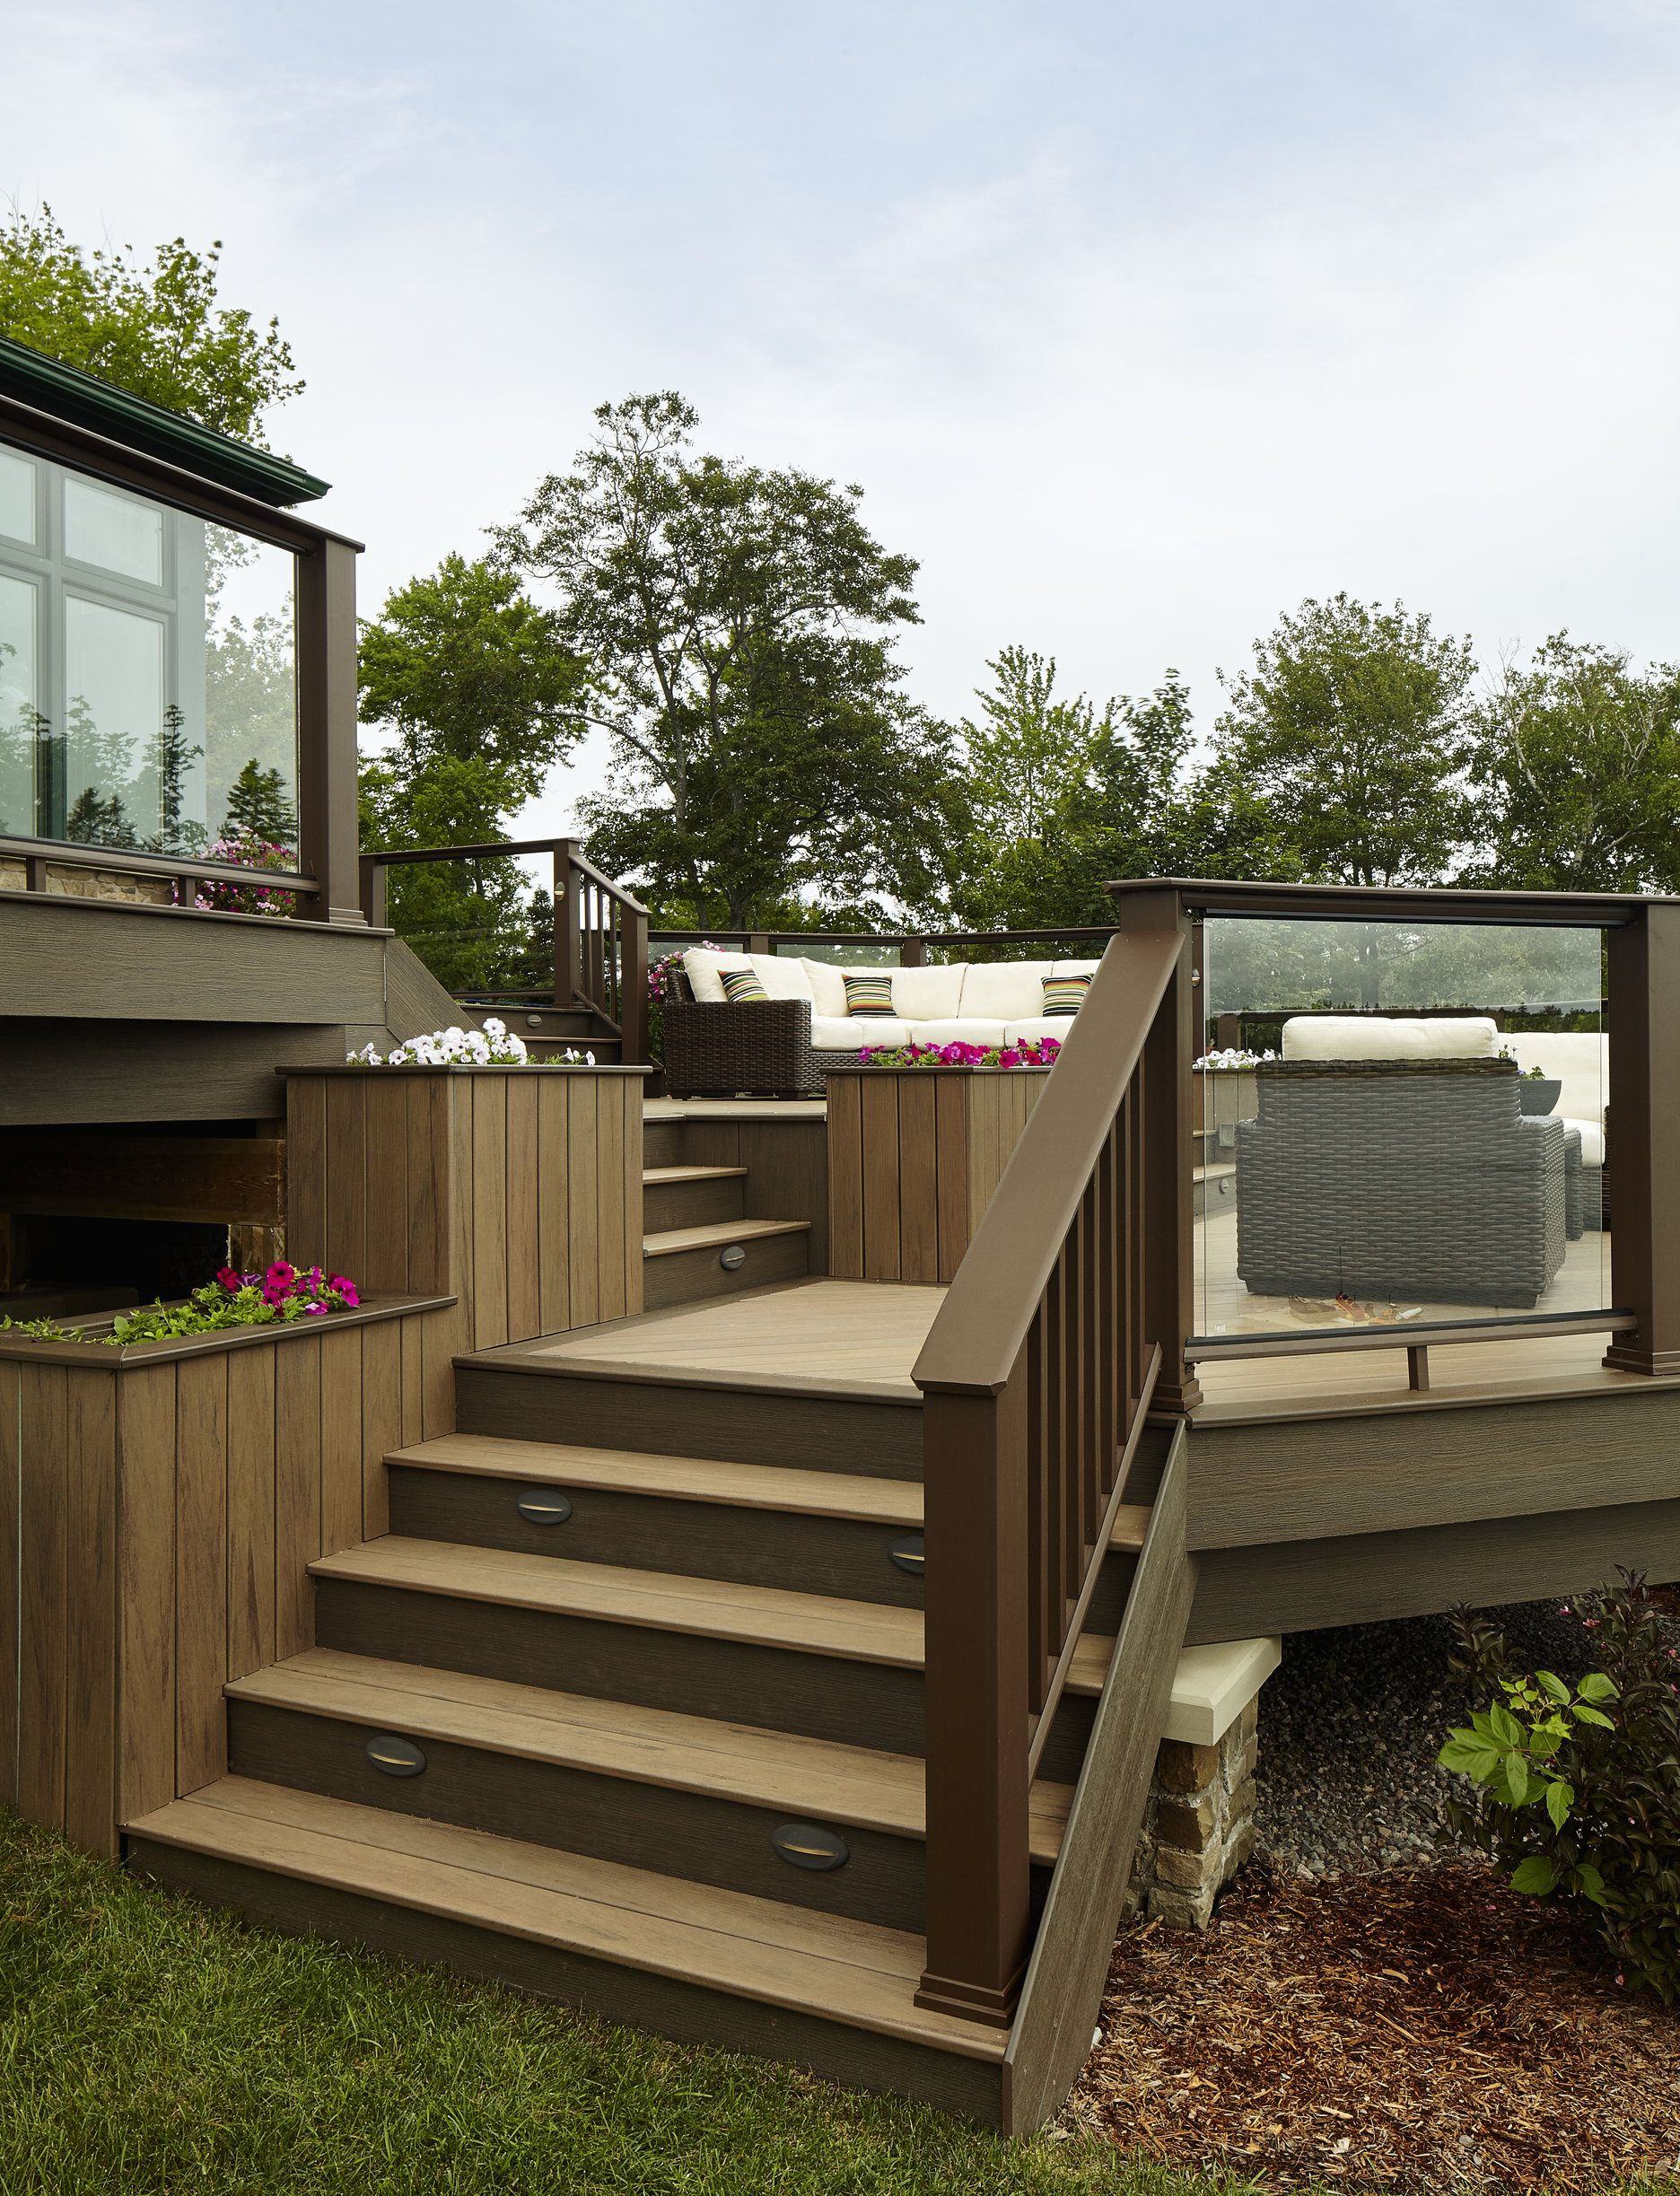 Lakeside Collection Patio Furniture: This Nova Scotia Dream Deck Was Built With TimberTech